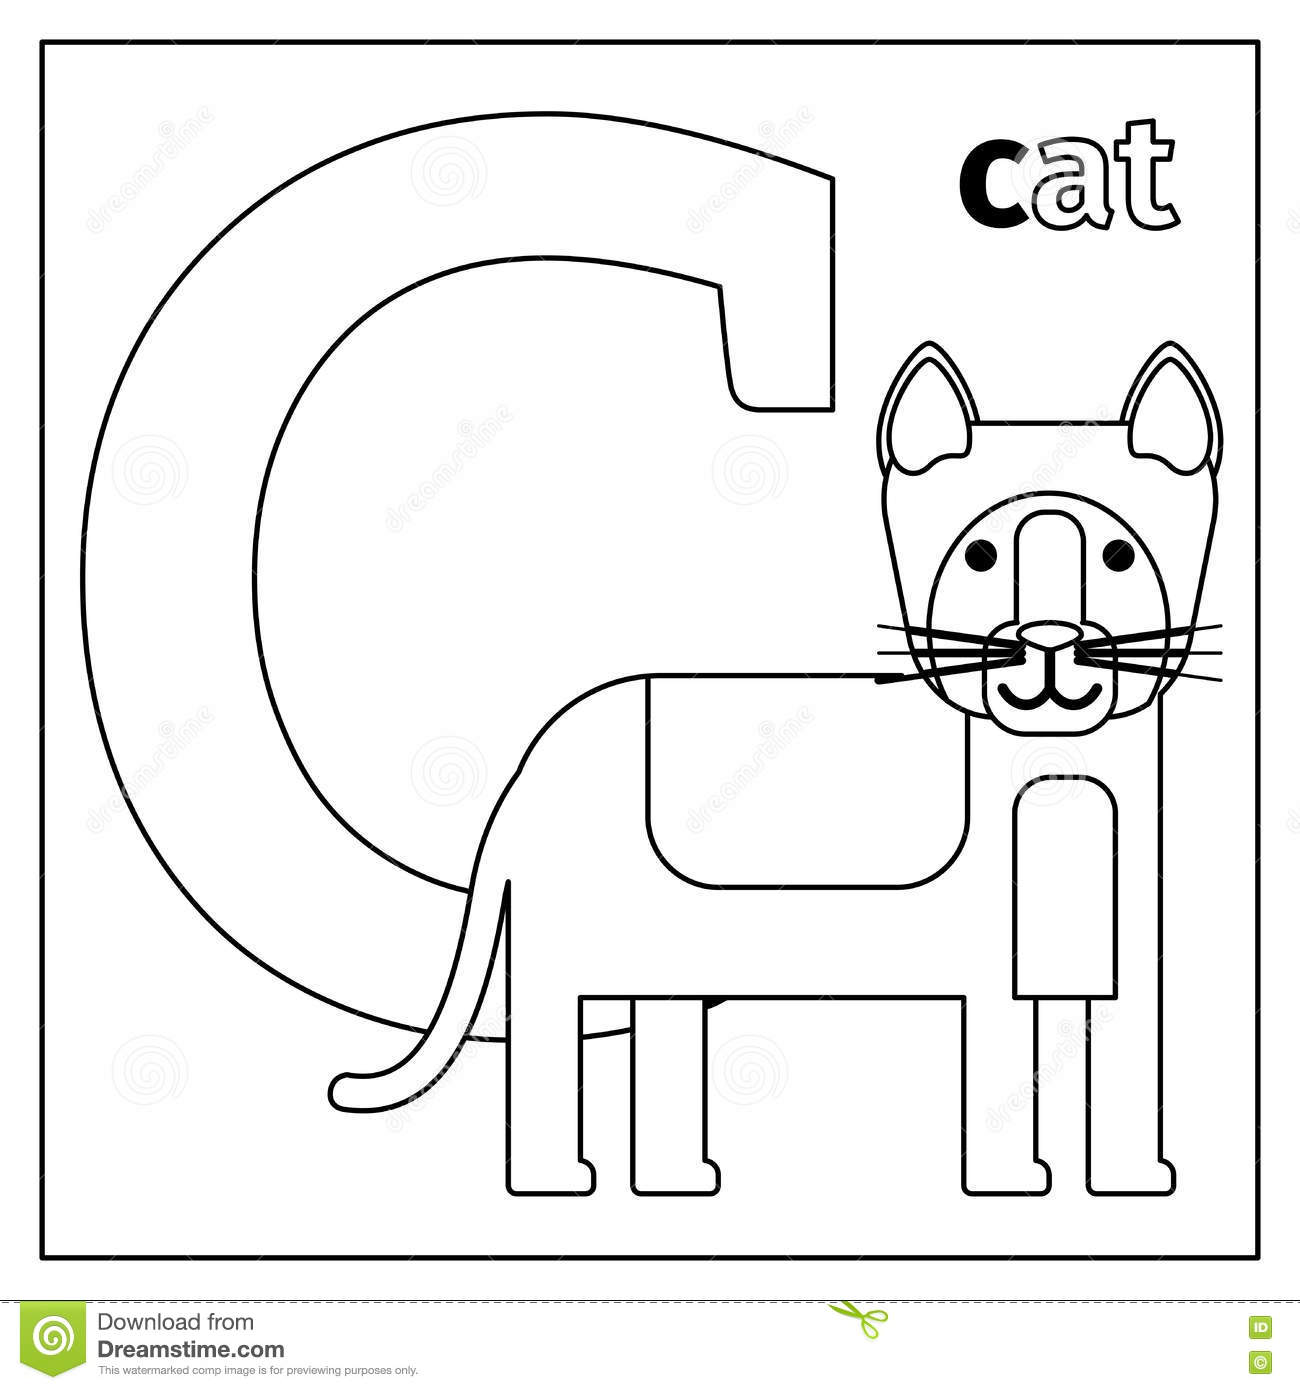 Cat Letter C Coloring Page Stock Vector Illustration Of Letter